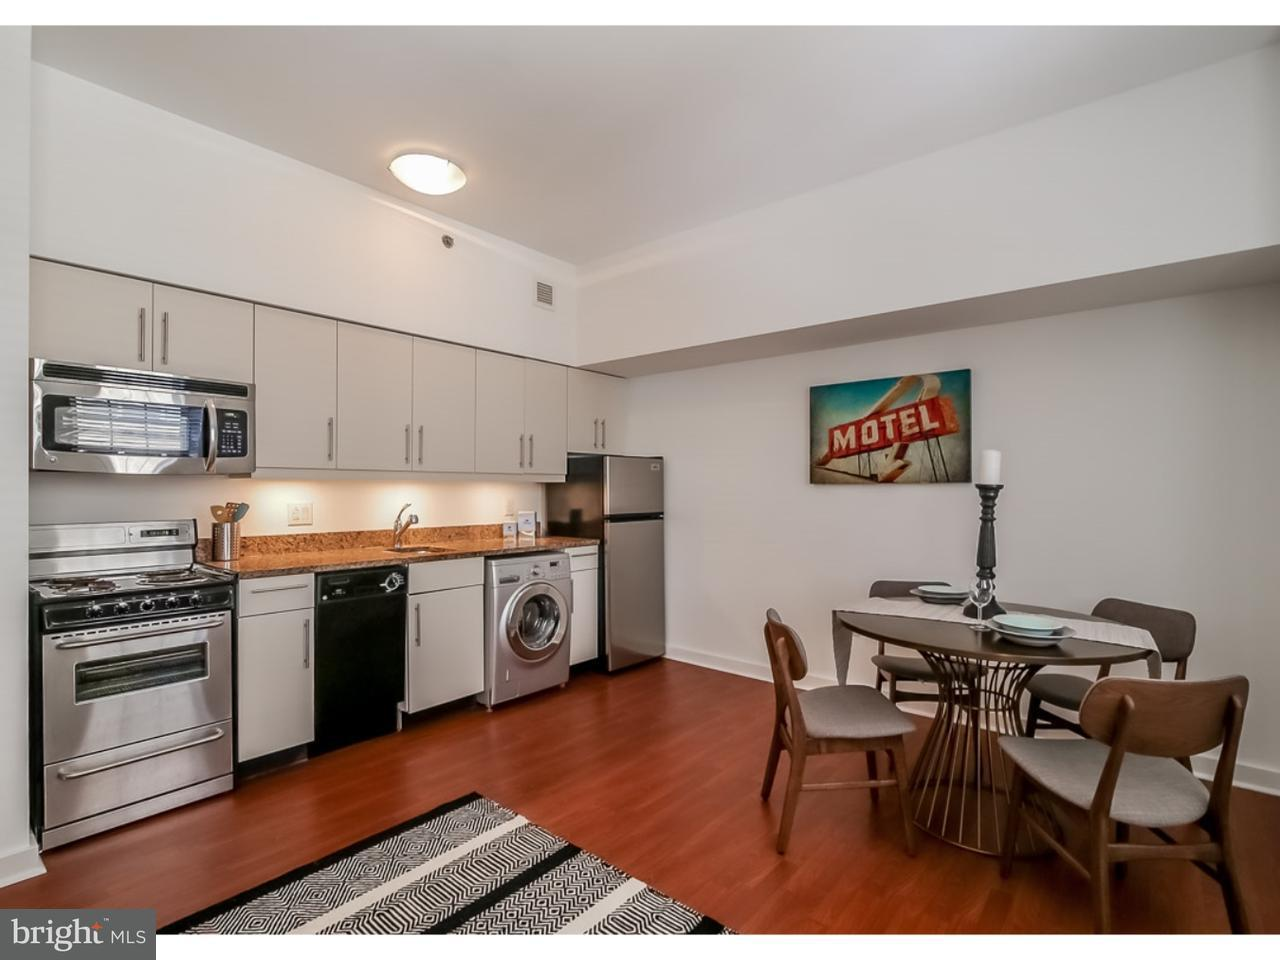 Additional photo for property listing at 219 S 18TH ST #502  Philadelphia, Pennsylvania 19103 Estados Unidos